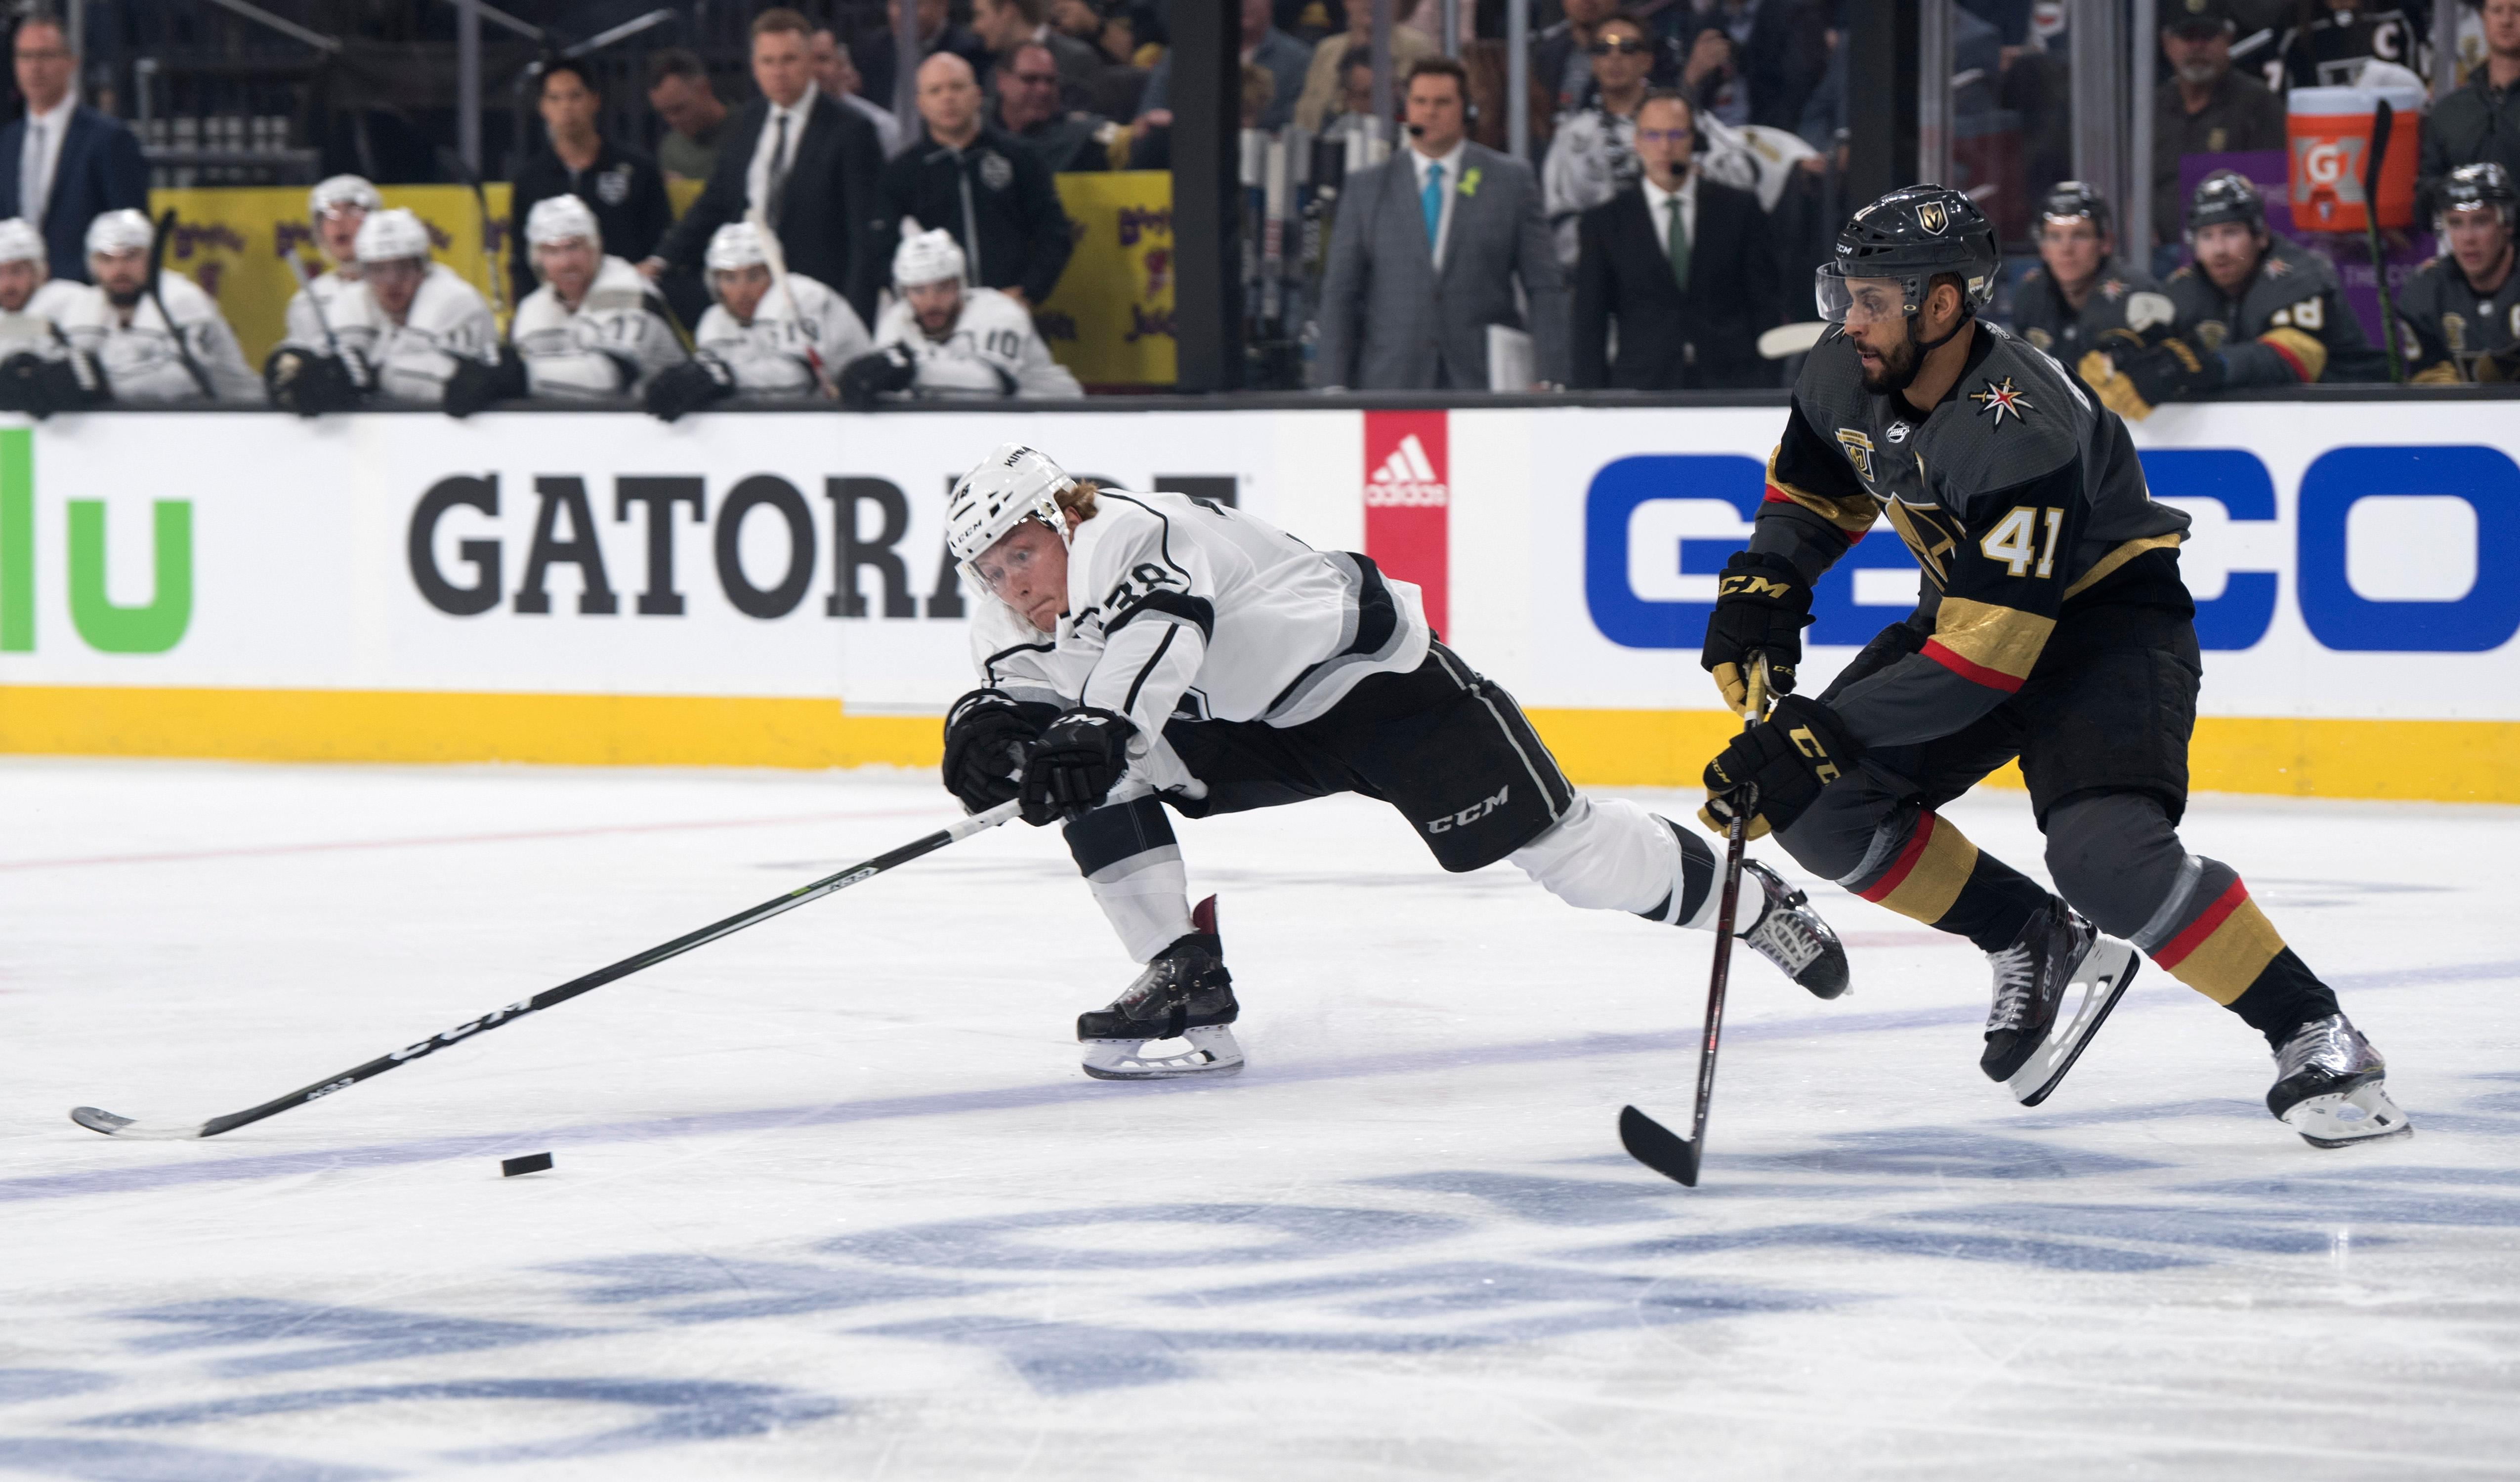 Los Angeles Kings defenseman Paul LaDue (38) and Vegas Golden Knights left wing Pierre-Edouard Bellemare (41) chase down a puck during the first period of Game 1 of their NHL hockey first-round playoff series Wednesday, April 11, 2018 at T-Mobile Arena. The Knights won 1-0. CREDIT: Sam Morris/Las Vegas News Bureau